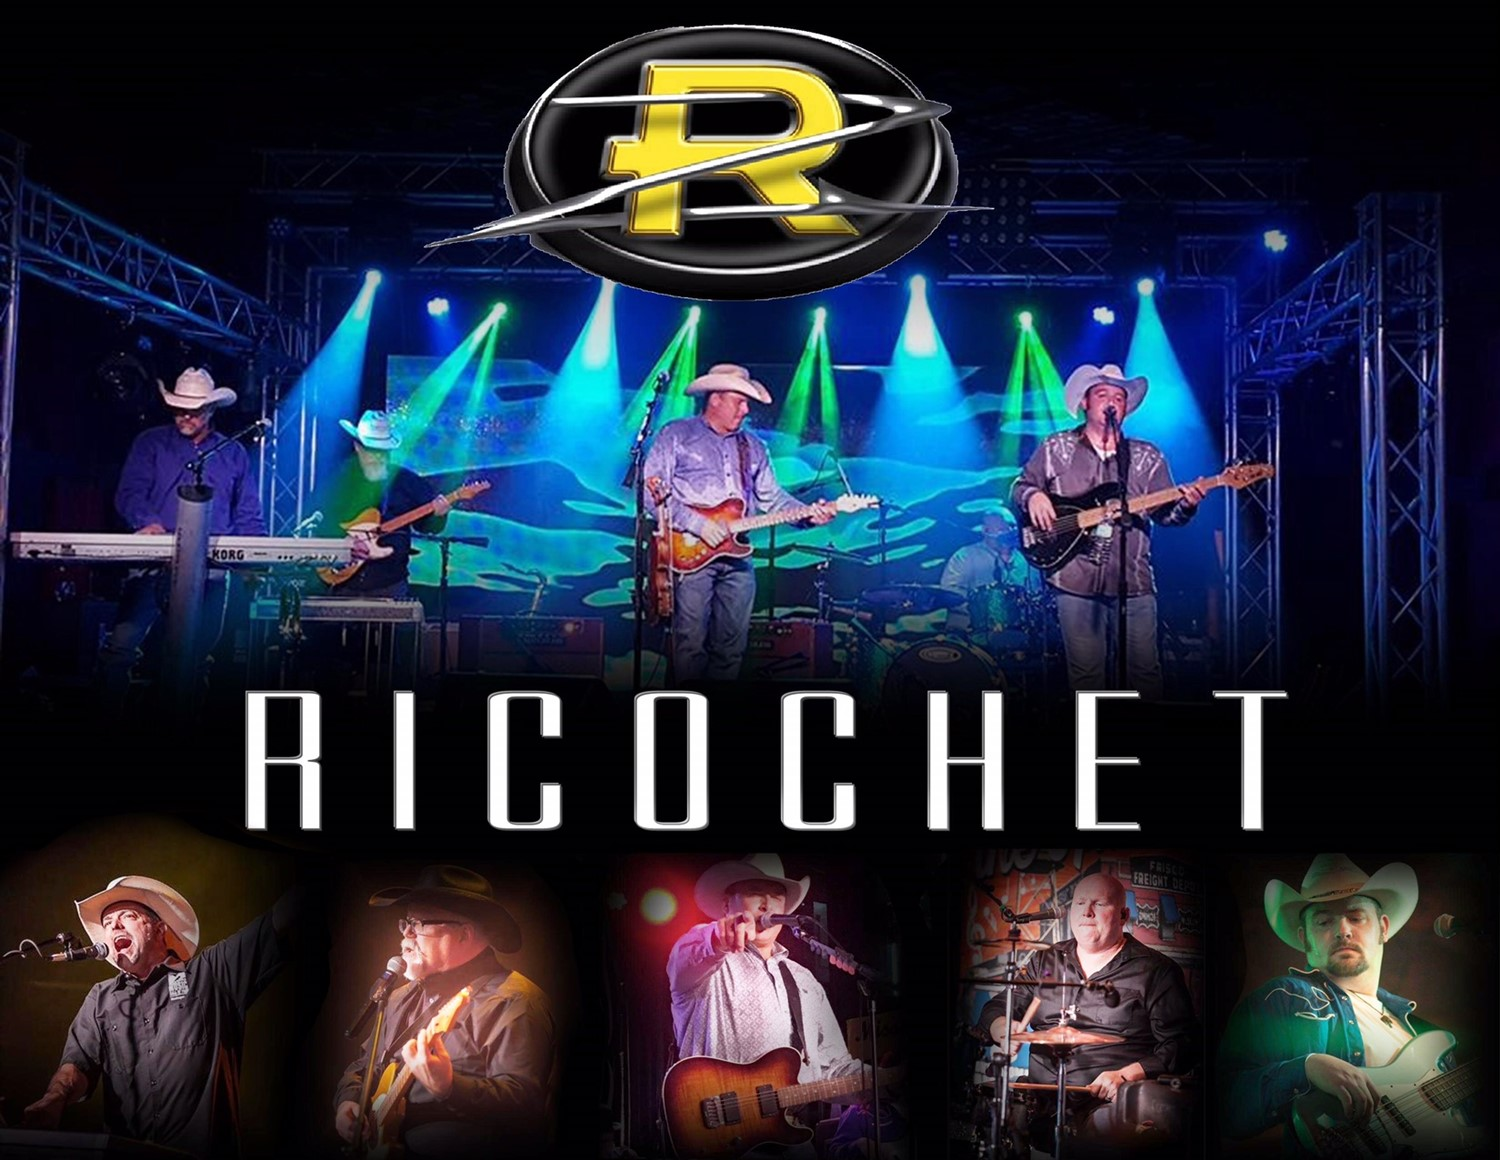 RICOCHET Special Guest Brock Wagoner on Jul 24, 20:00@Gateway Civic Center - Buy tickets and Get information on City of Oberlin